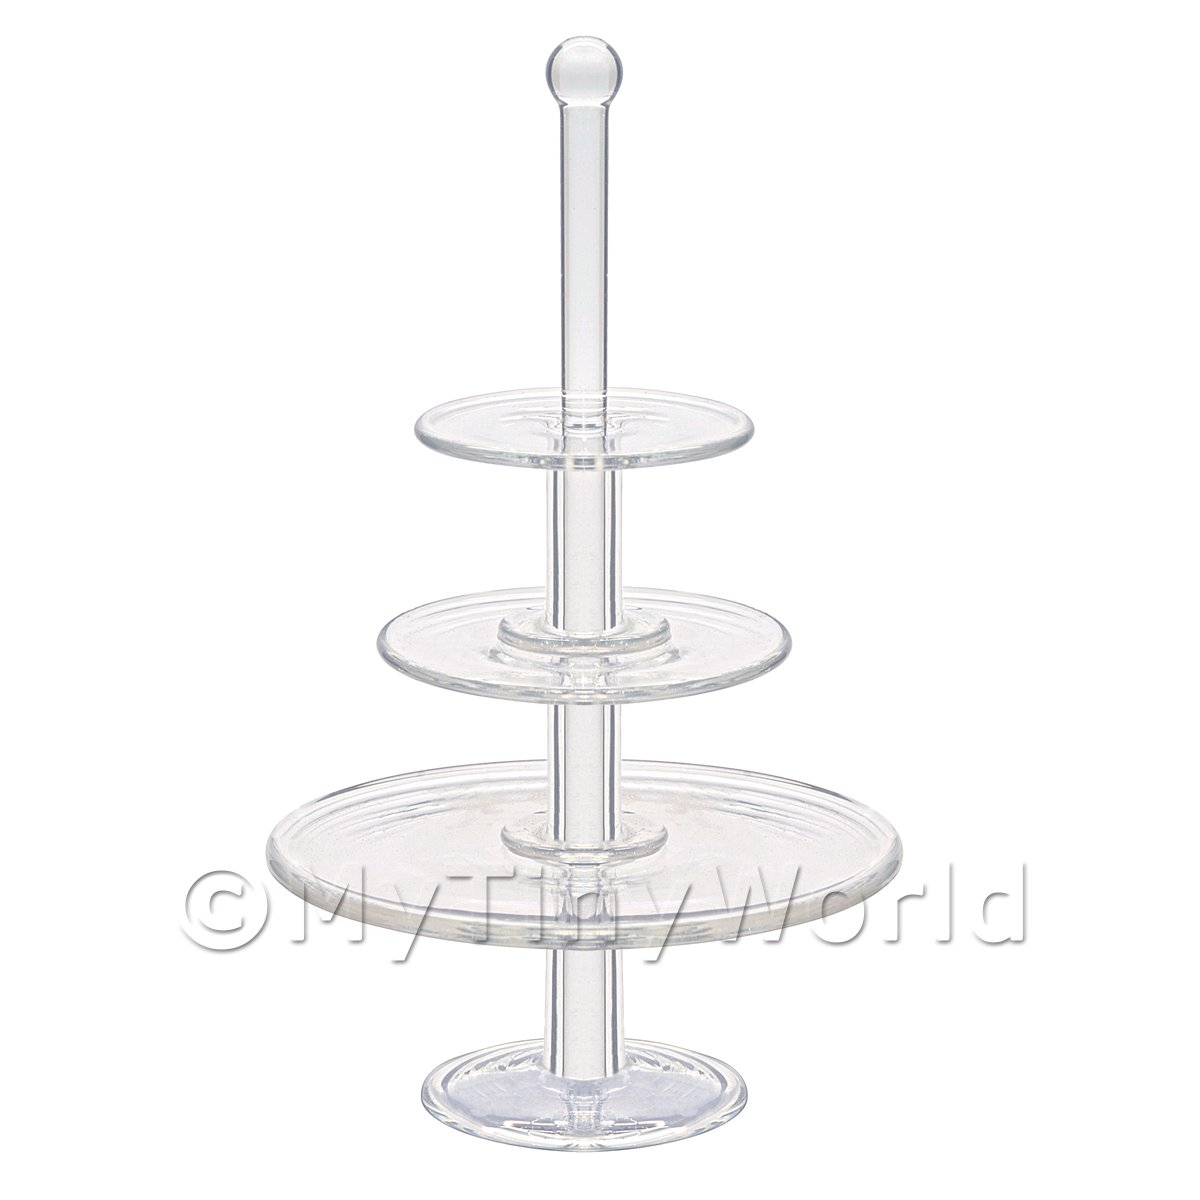 Dolls House Miniature Handmade 3 Tier Clear Glass Cake Stand